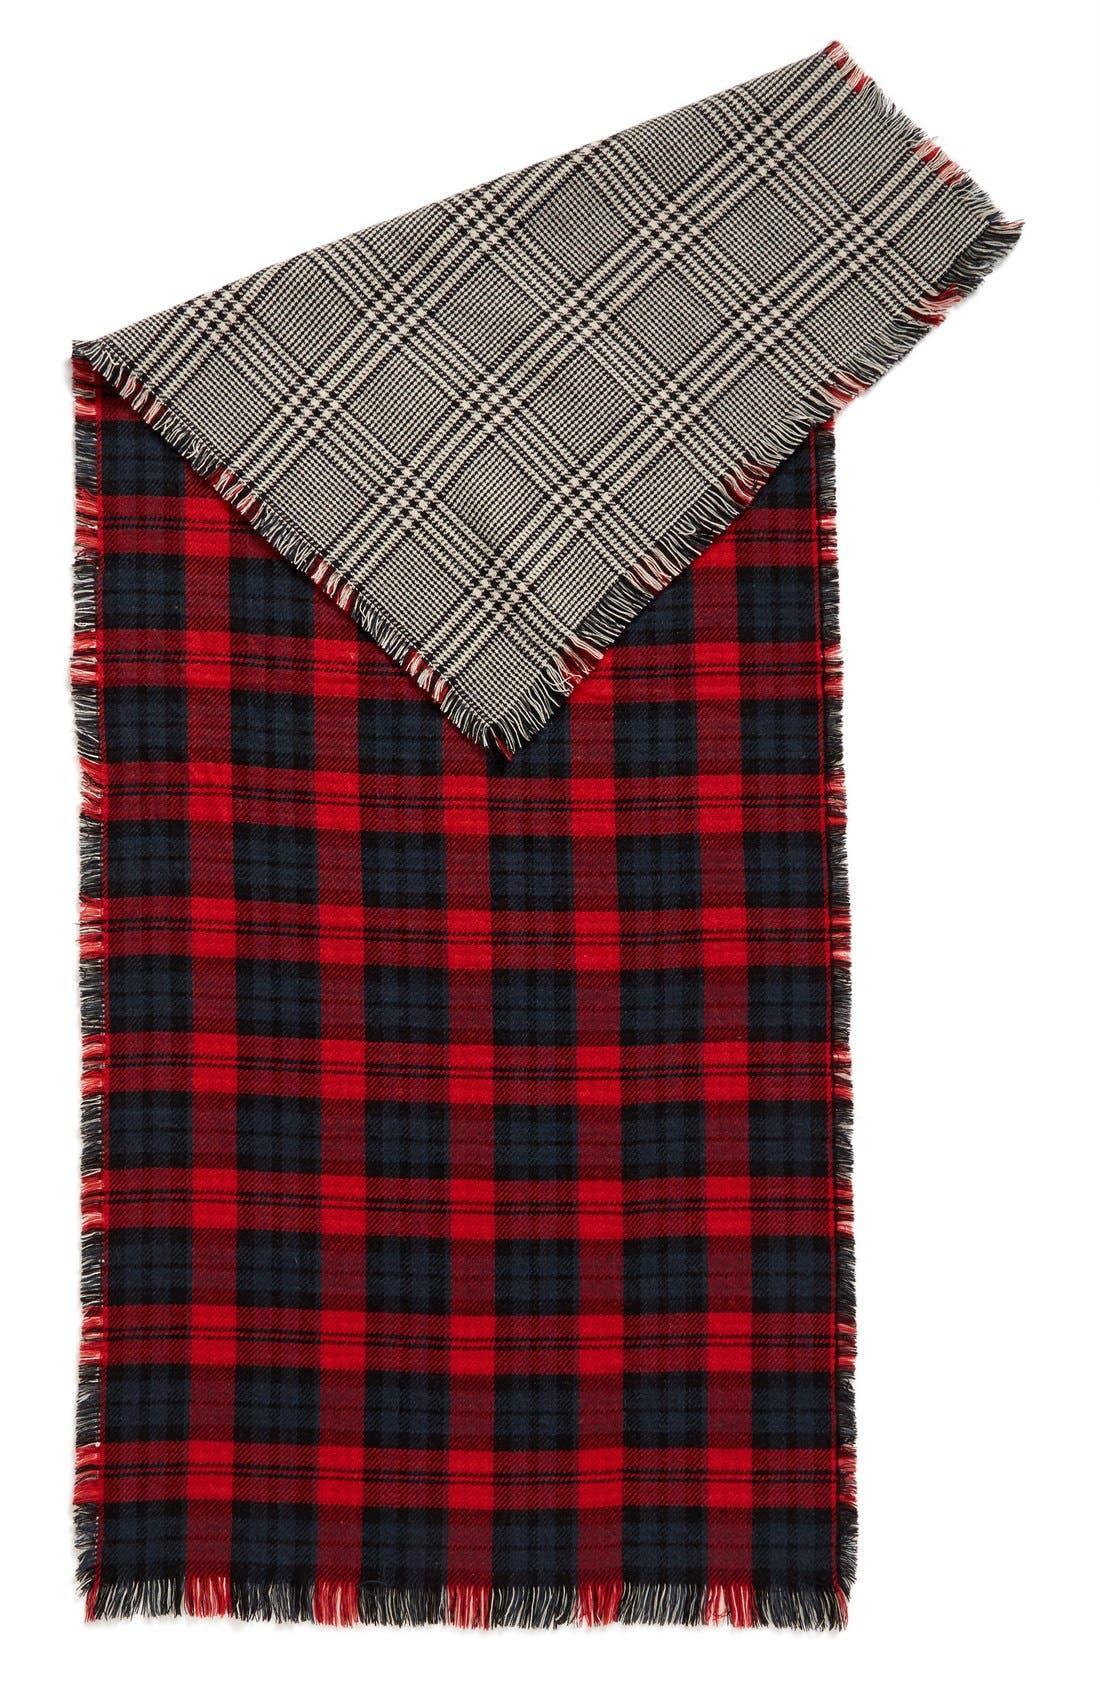 Reversible Scarf,                             Alternate thumbnail 2, color,                             Black/ Red